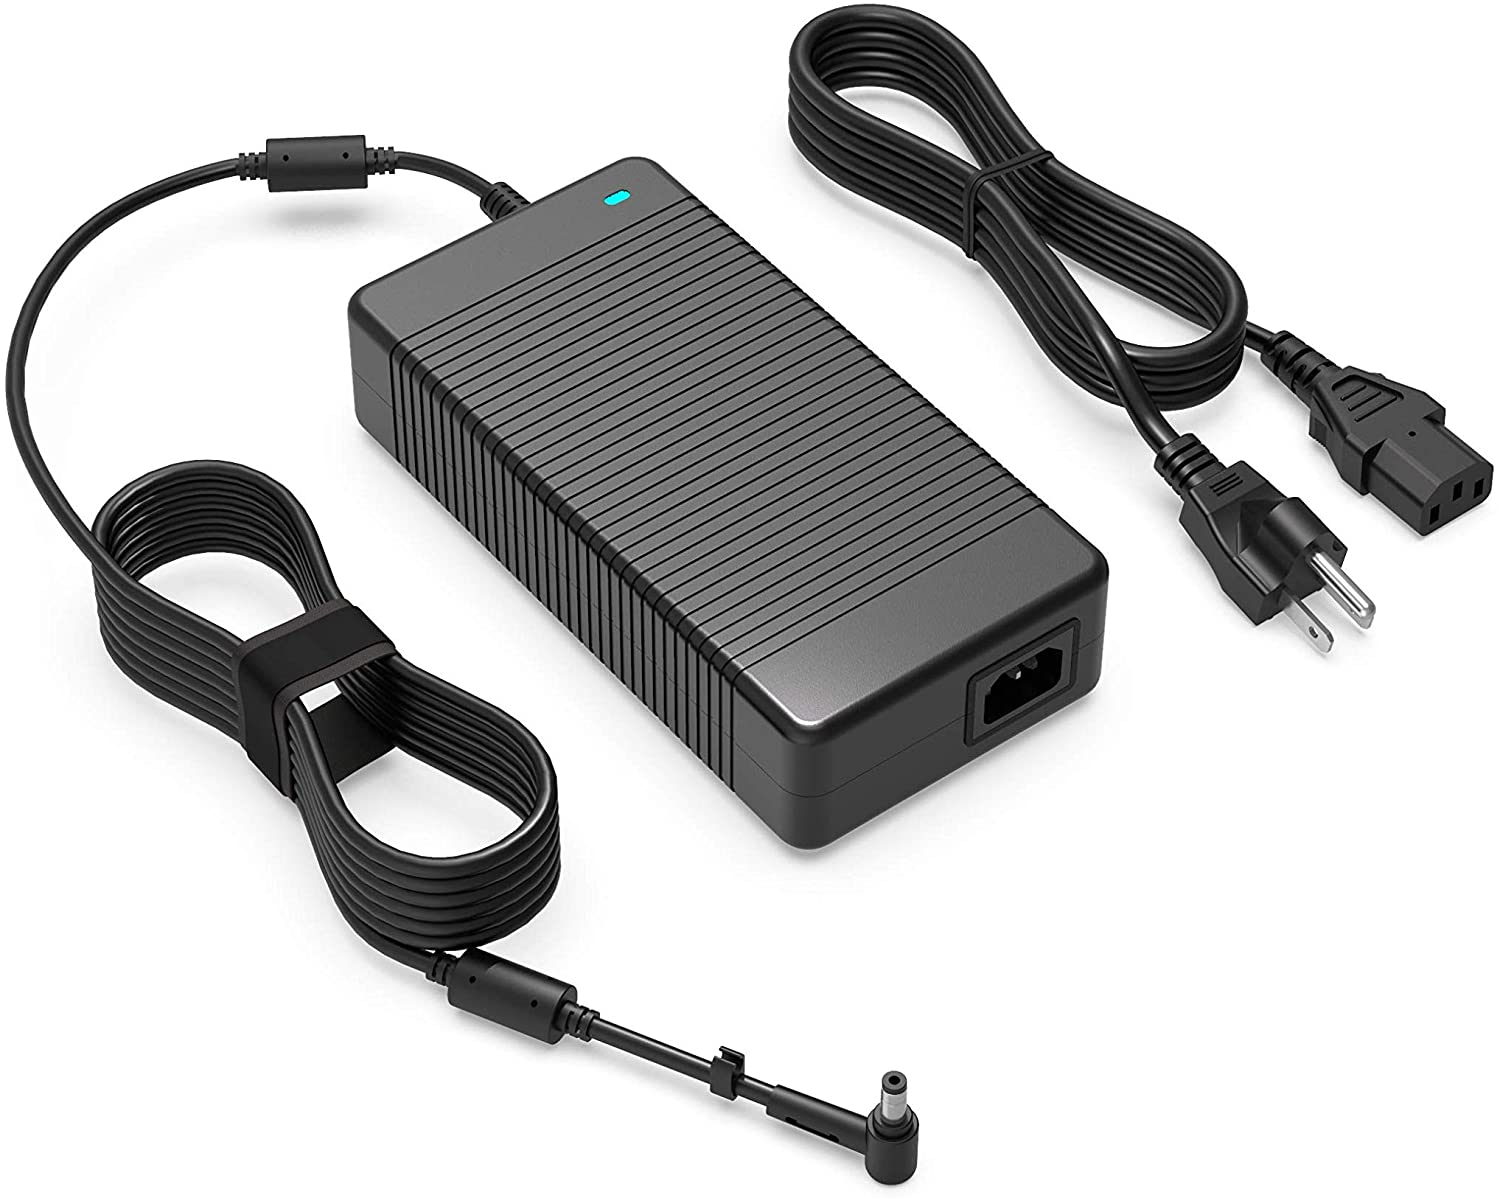 230W 180W AC Charger Fit for Asus ZenBook Pro Duo UX581GV UX581LV ROG GL531GU GL531GT GL531G GL531GV GL531GW GL531 GL531GV-PB74 GL702VS GL703GM GL703GS Gaming Laptop Power Supply Adapter Cord